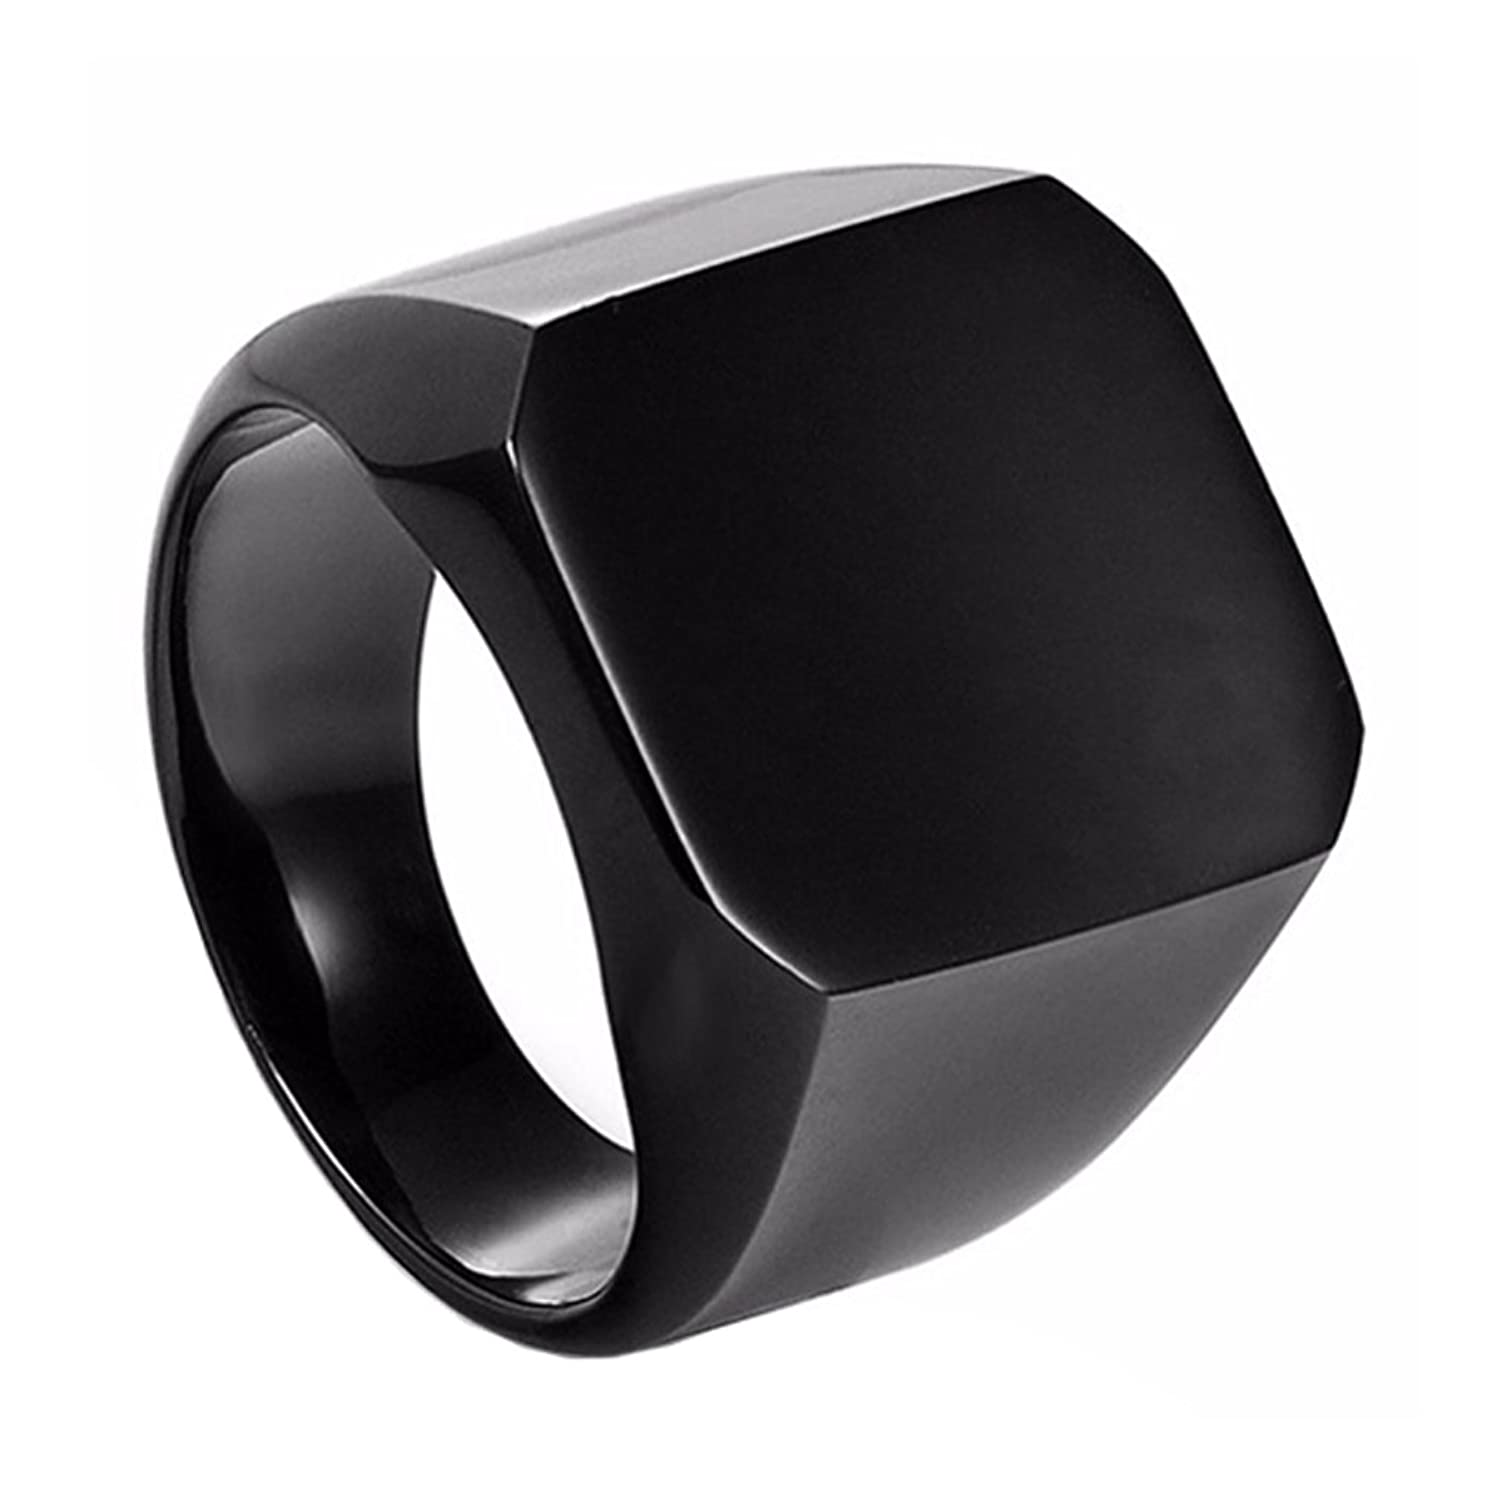 rings rose band beveled gold mens carbon dp bands tungsten inlay black com fiber for plated mnh wedding edge men amazon